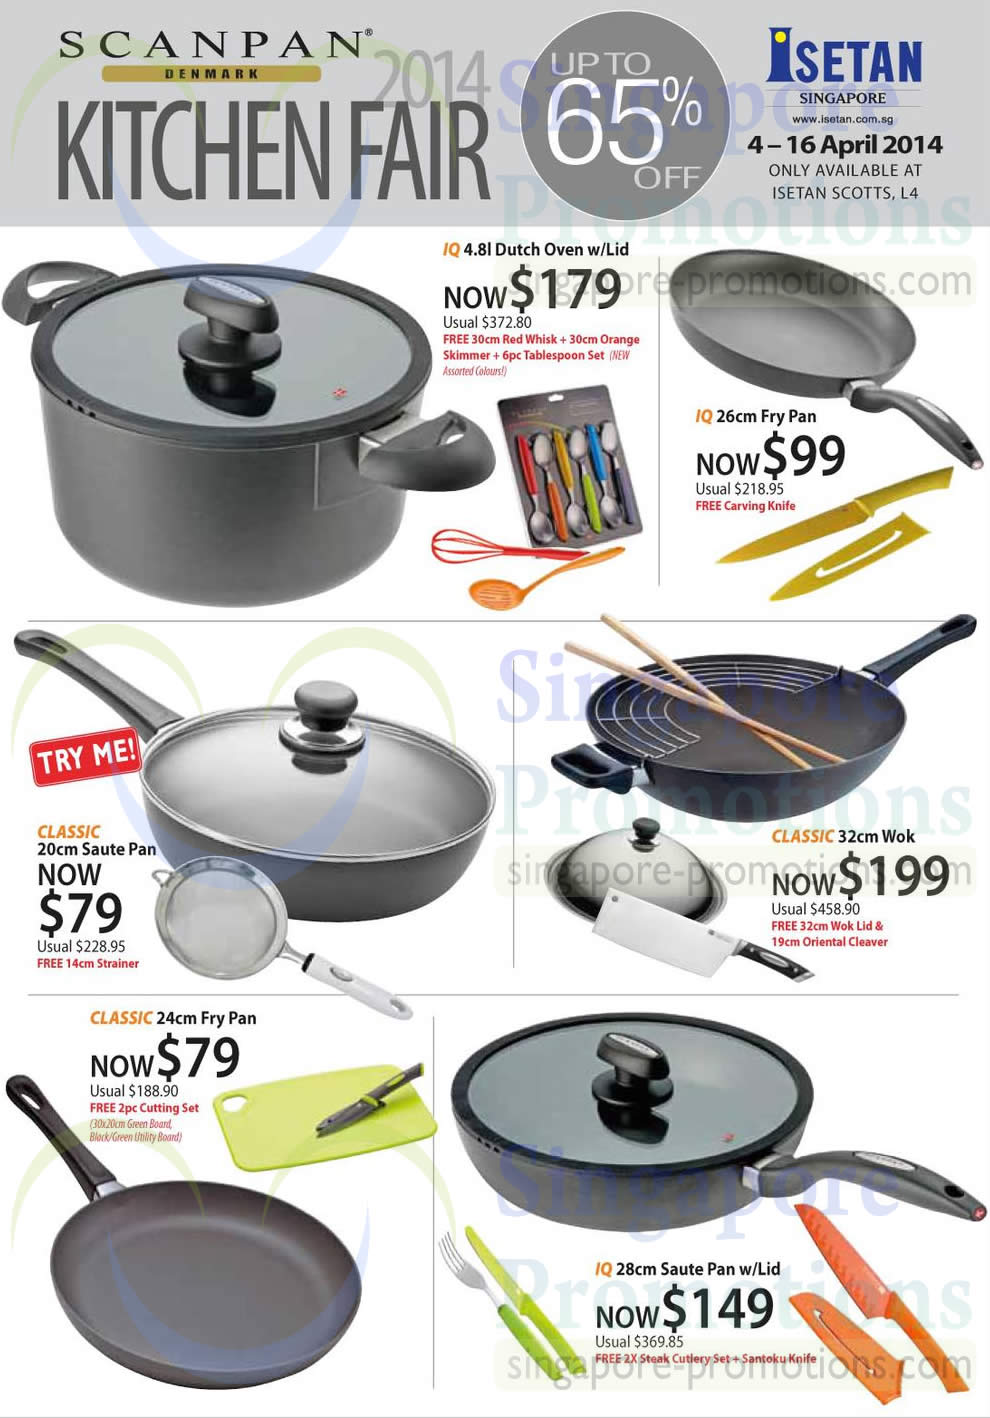 Scanpan Kitchen Fair Saute Pan, Fry Pan, Wok, Dutch Oven